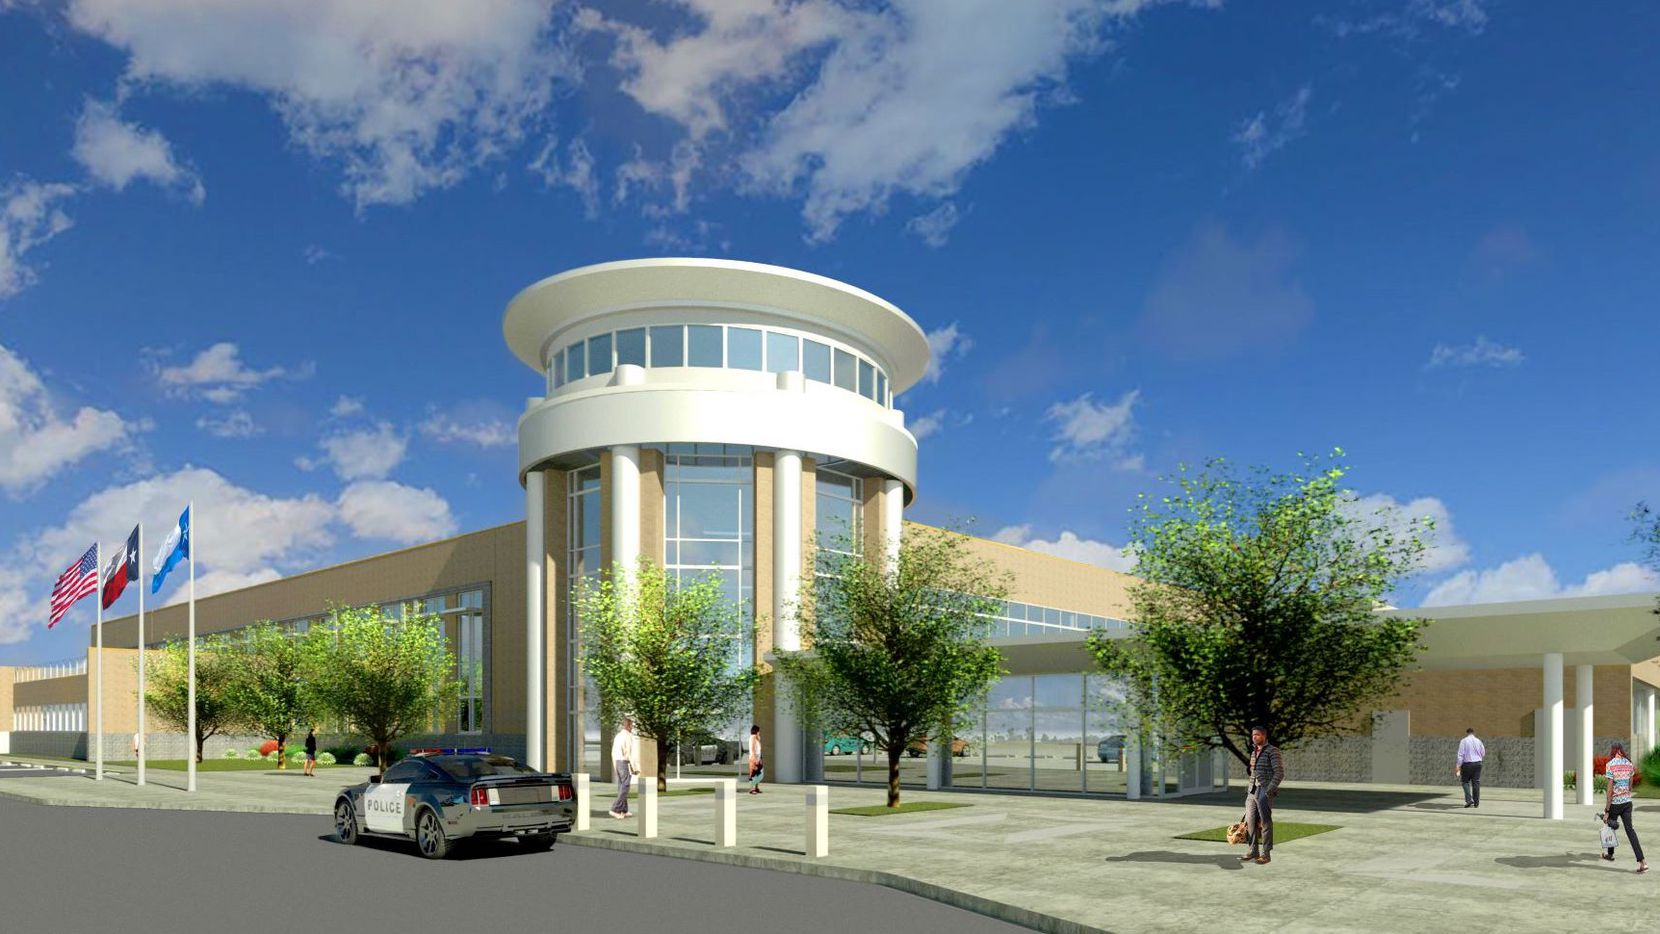 The Dallas County South Government Center is pictured in this rendering.